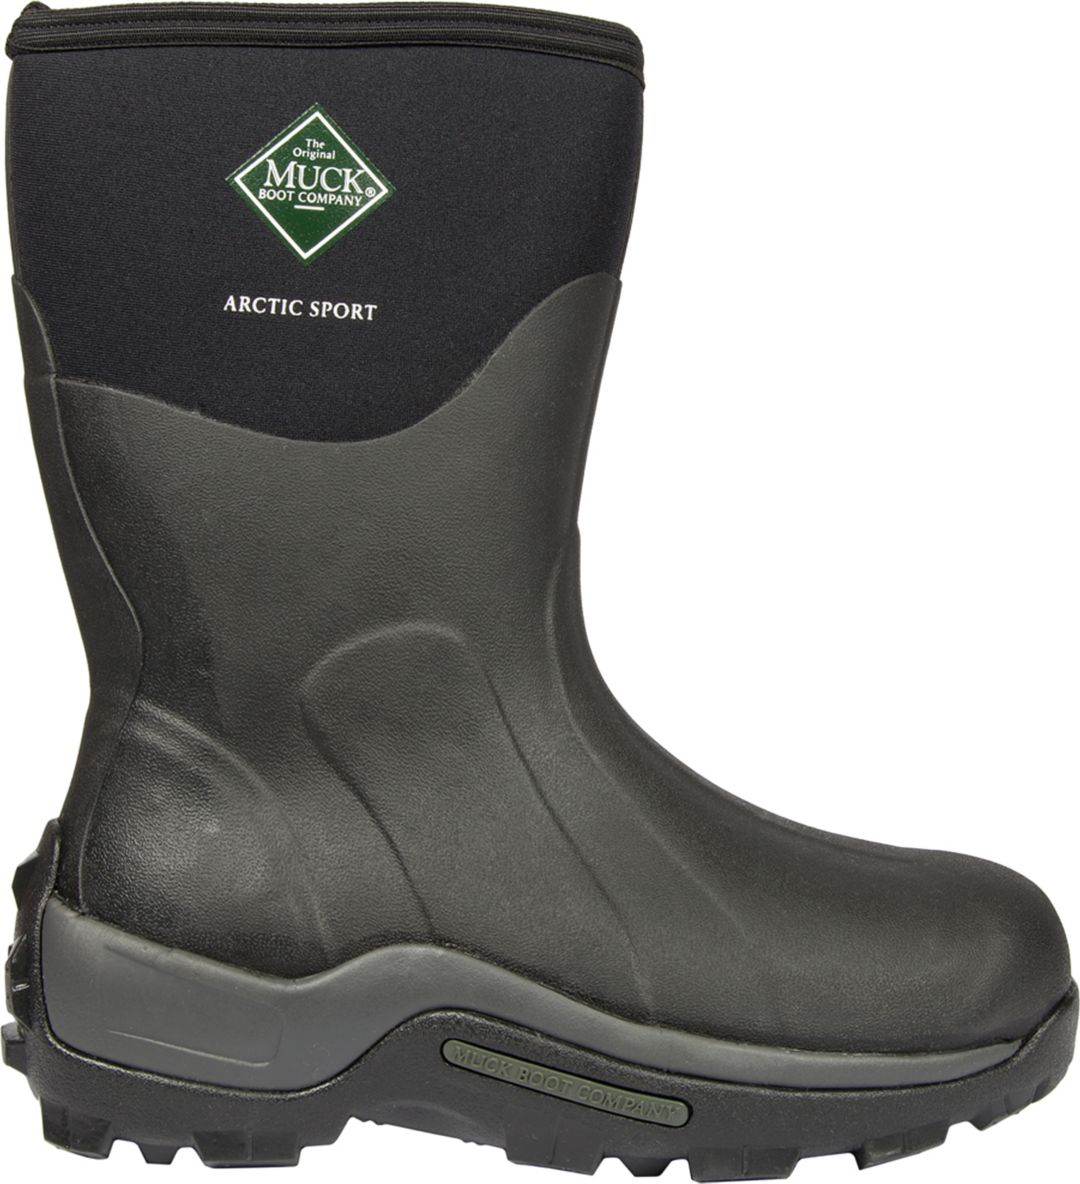 e8a0c0db73f Muck Boots Men's Arctic Sport Mid Insulated Waterproof Winter Boots